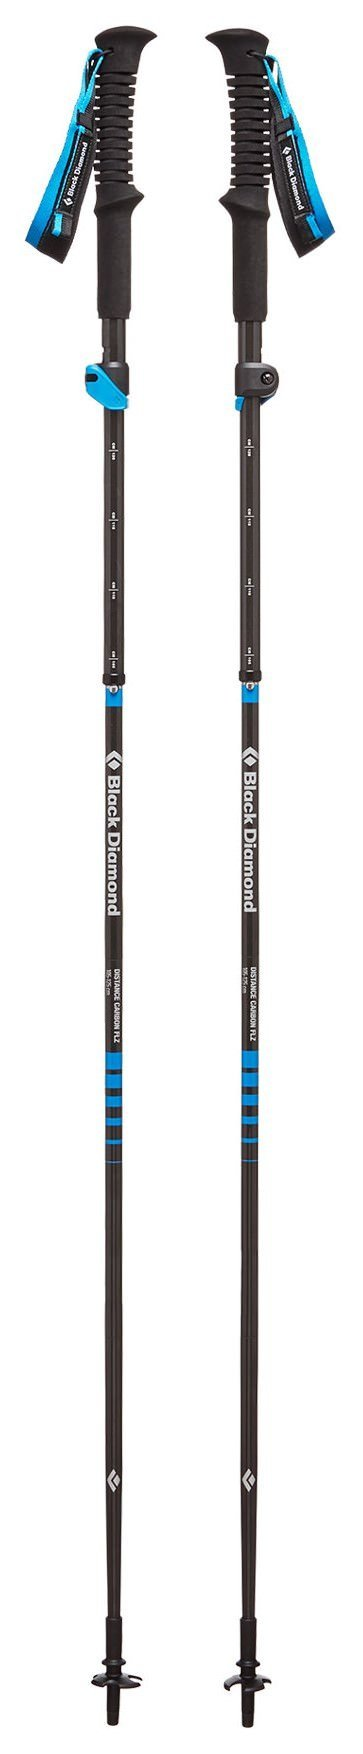 Black Diamond Distance Carbon FLZ Trekking Poles - 1 Shot Gear